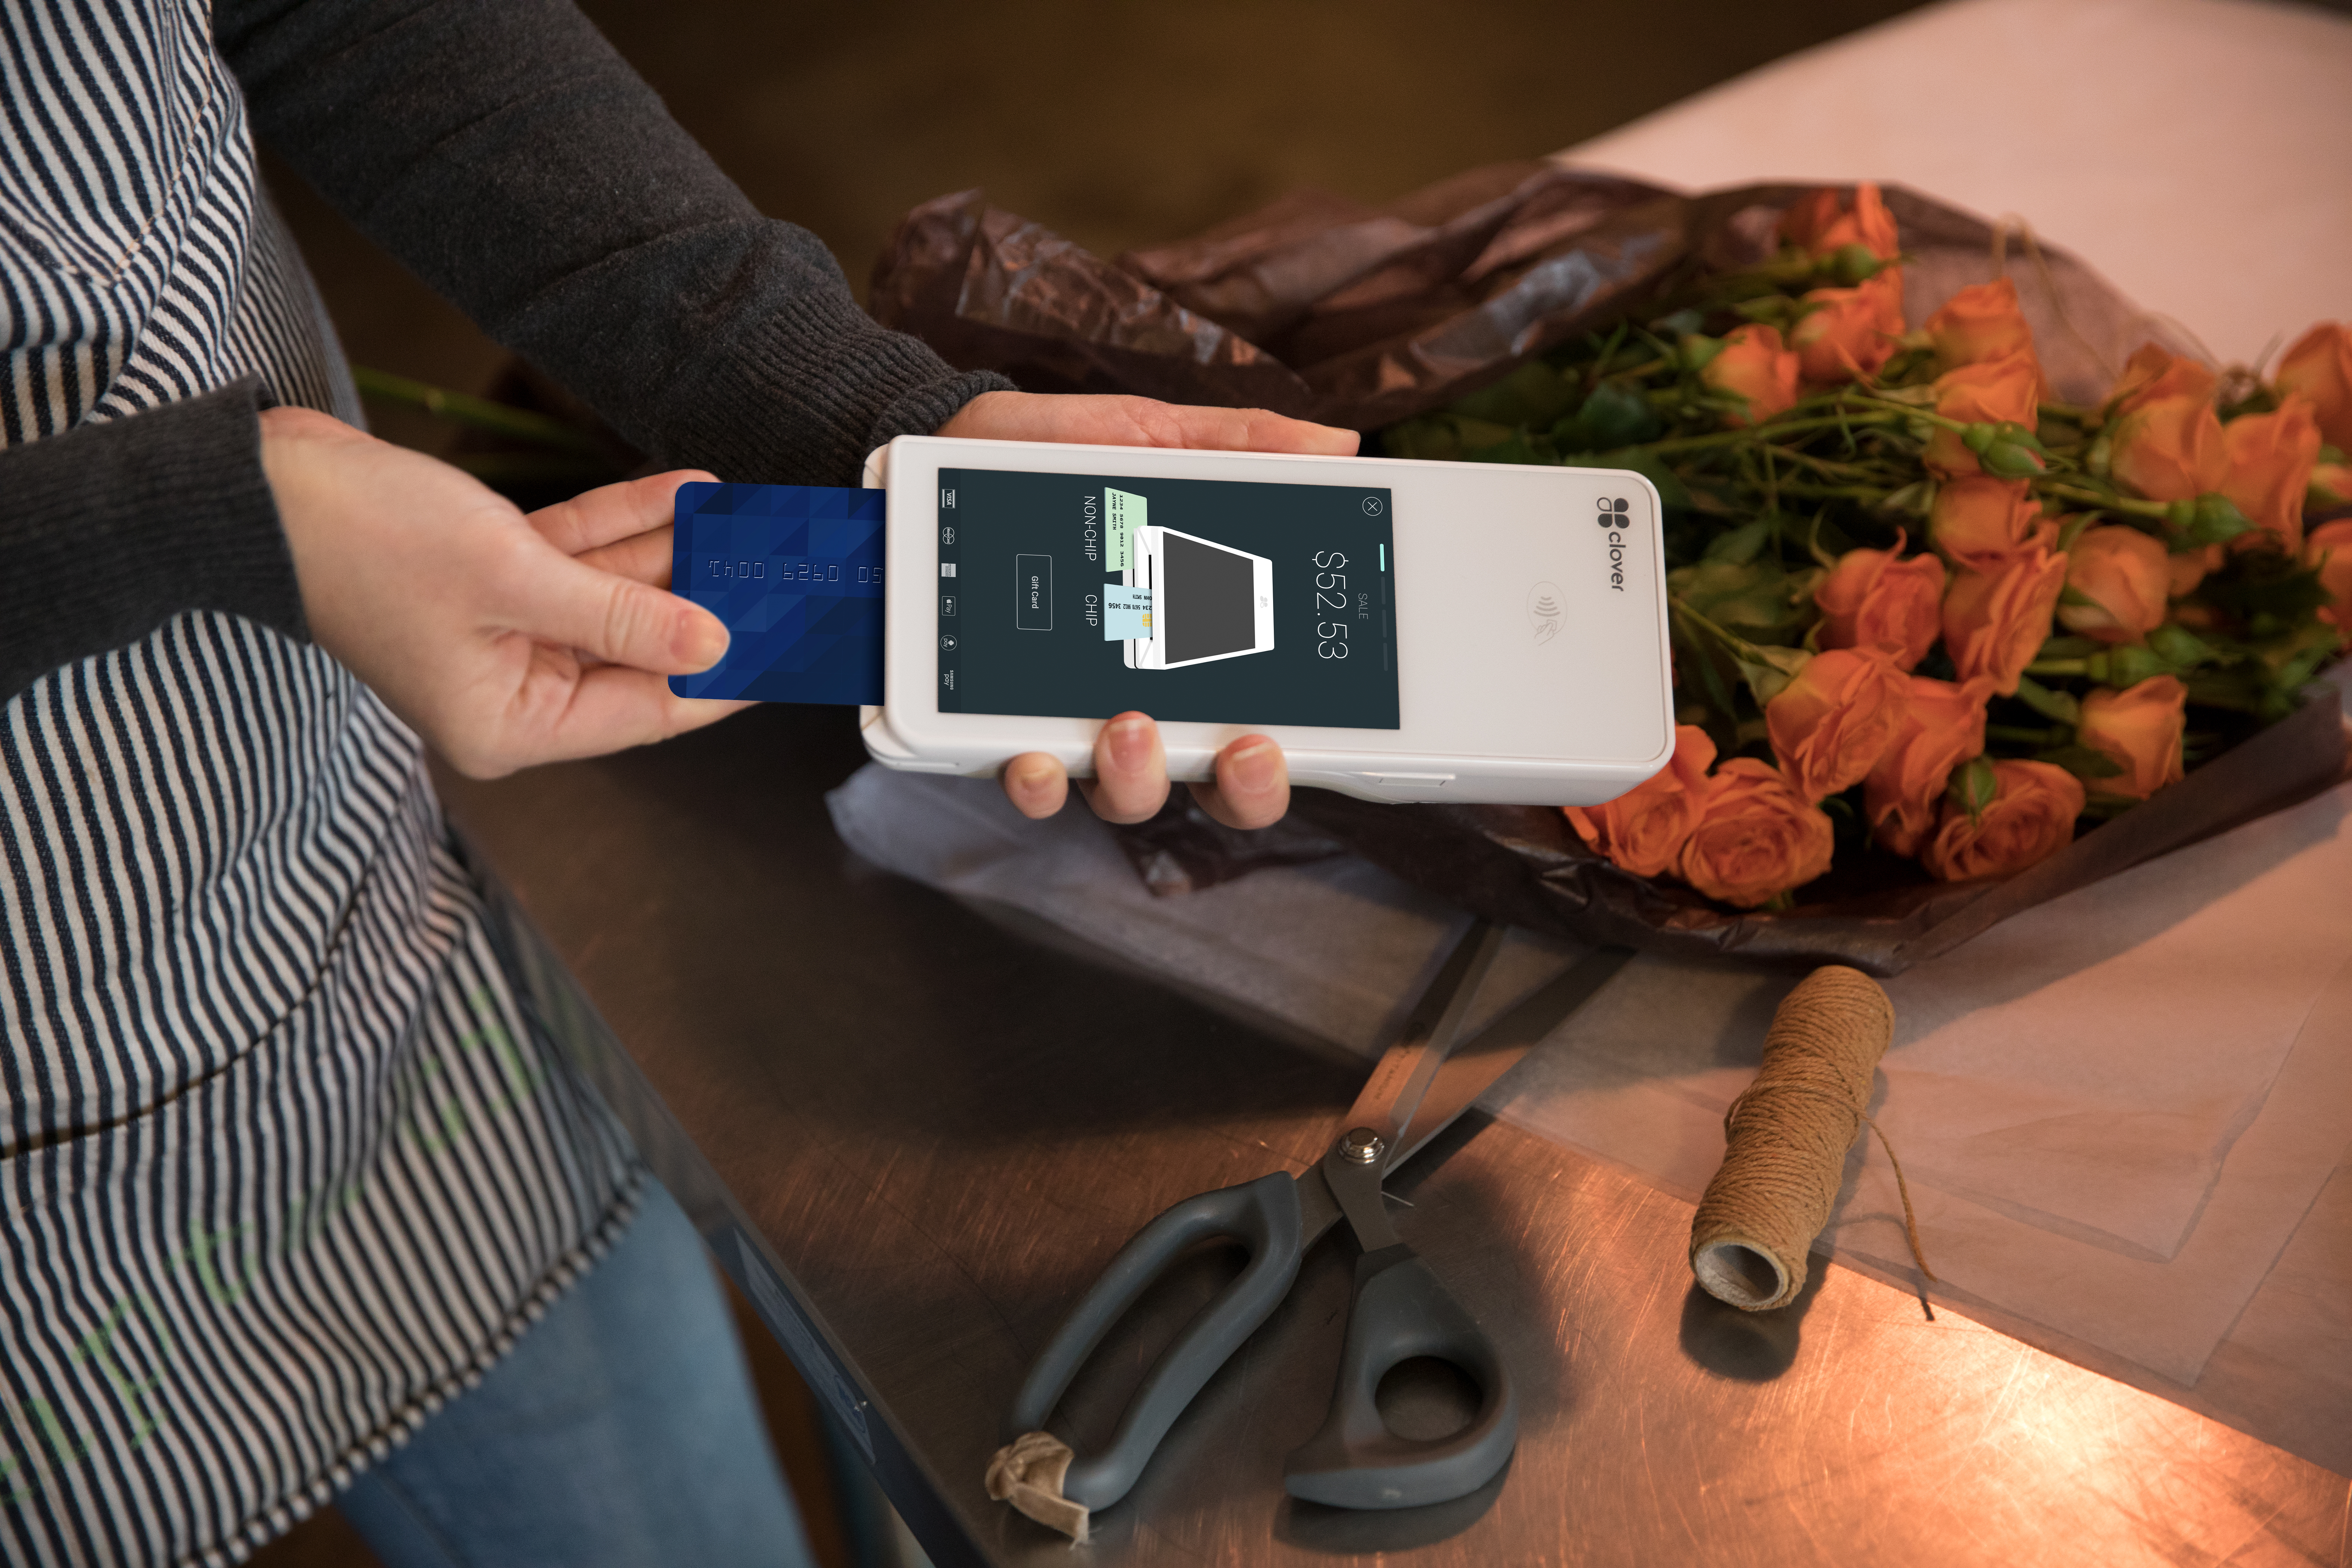 A woman inserting her credit card into a Clover Flex mobile point-of-sale device from Clover.